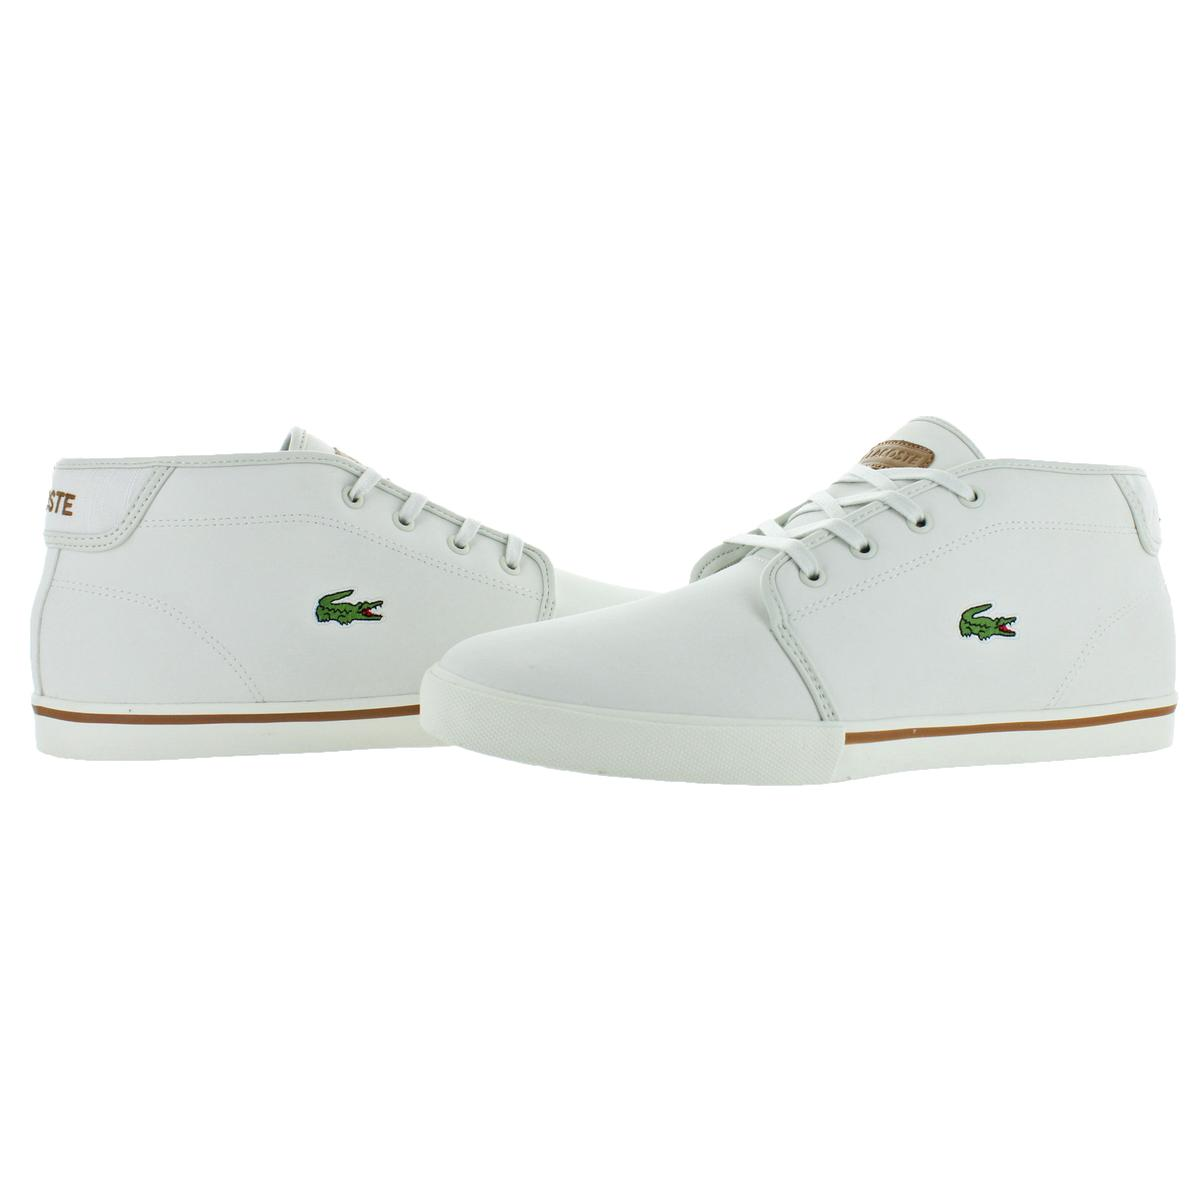 6bfe8a5b30d103 Lacoste Men s Ampthill Leather Chukka Mid-Top Fashion Sneakers Shoes ...